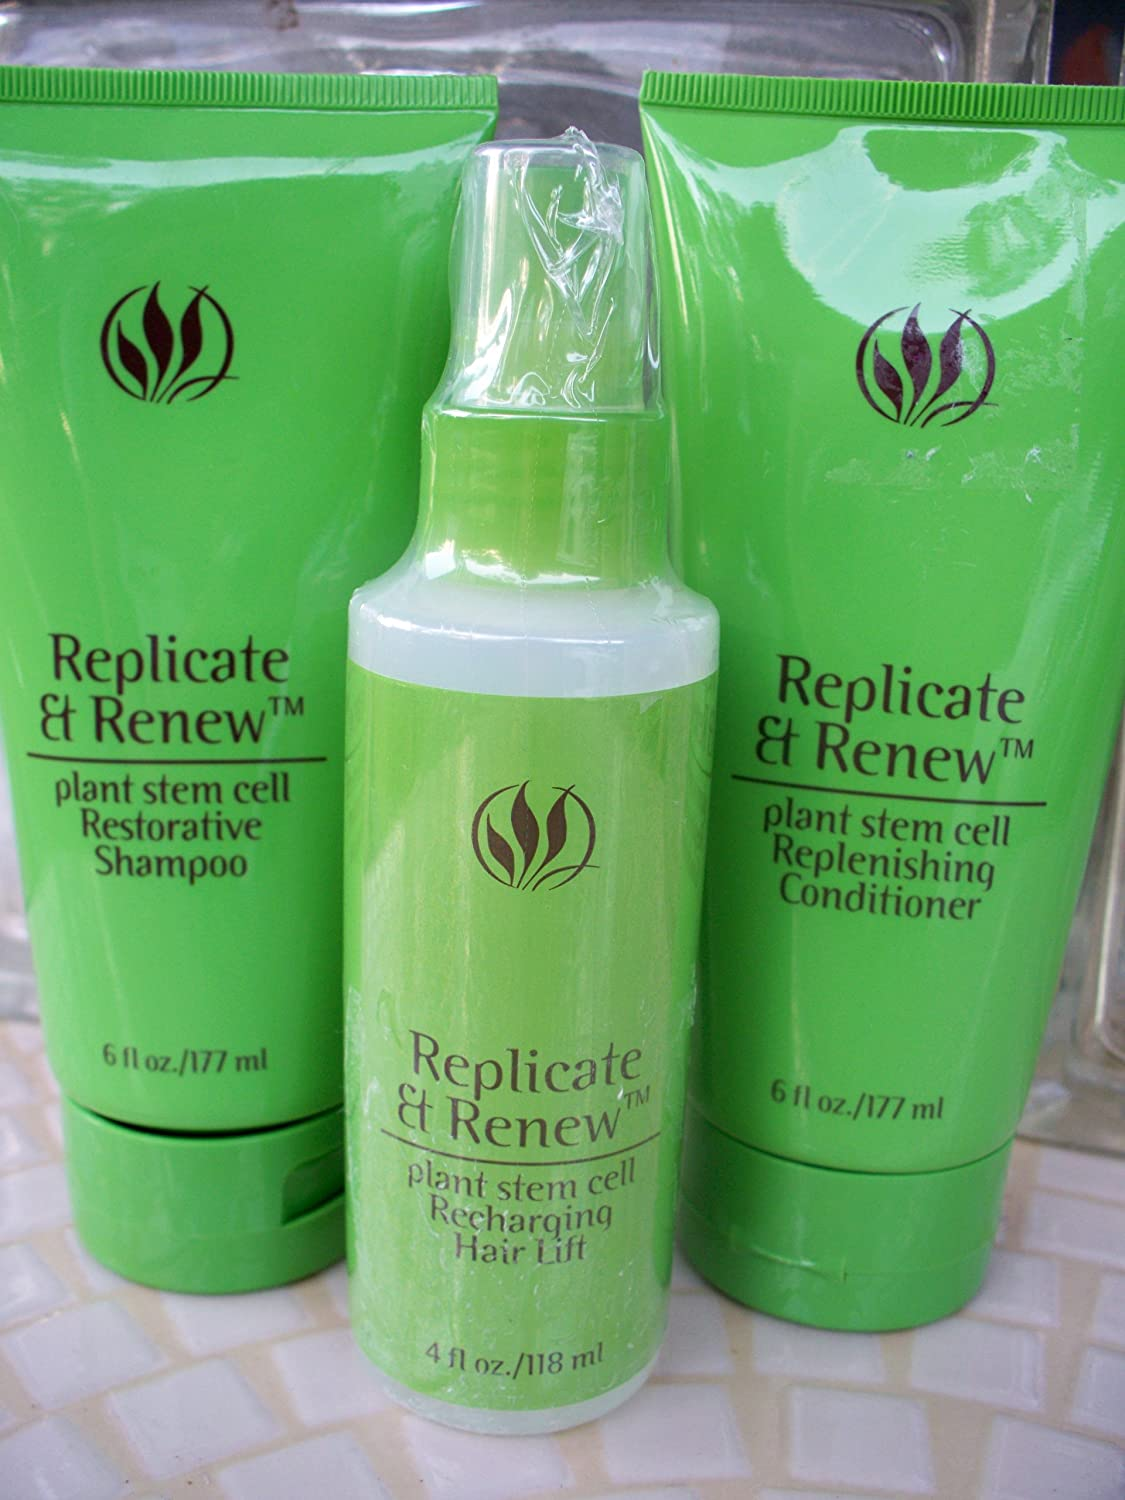 Serious Skin Care Replicate & Renew Plant Stem Cell Replenishing Shampoo & Conditioner 6 Oz Each + Recharging Hair Lift 4 Oz All Sealed